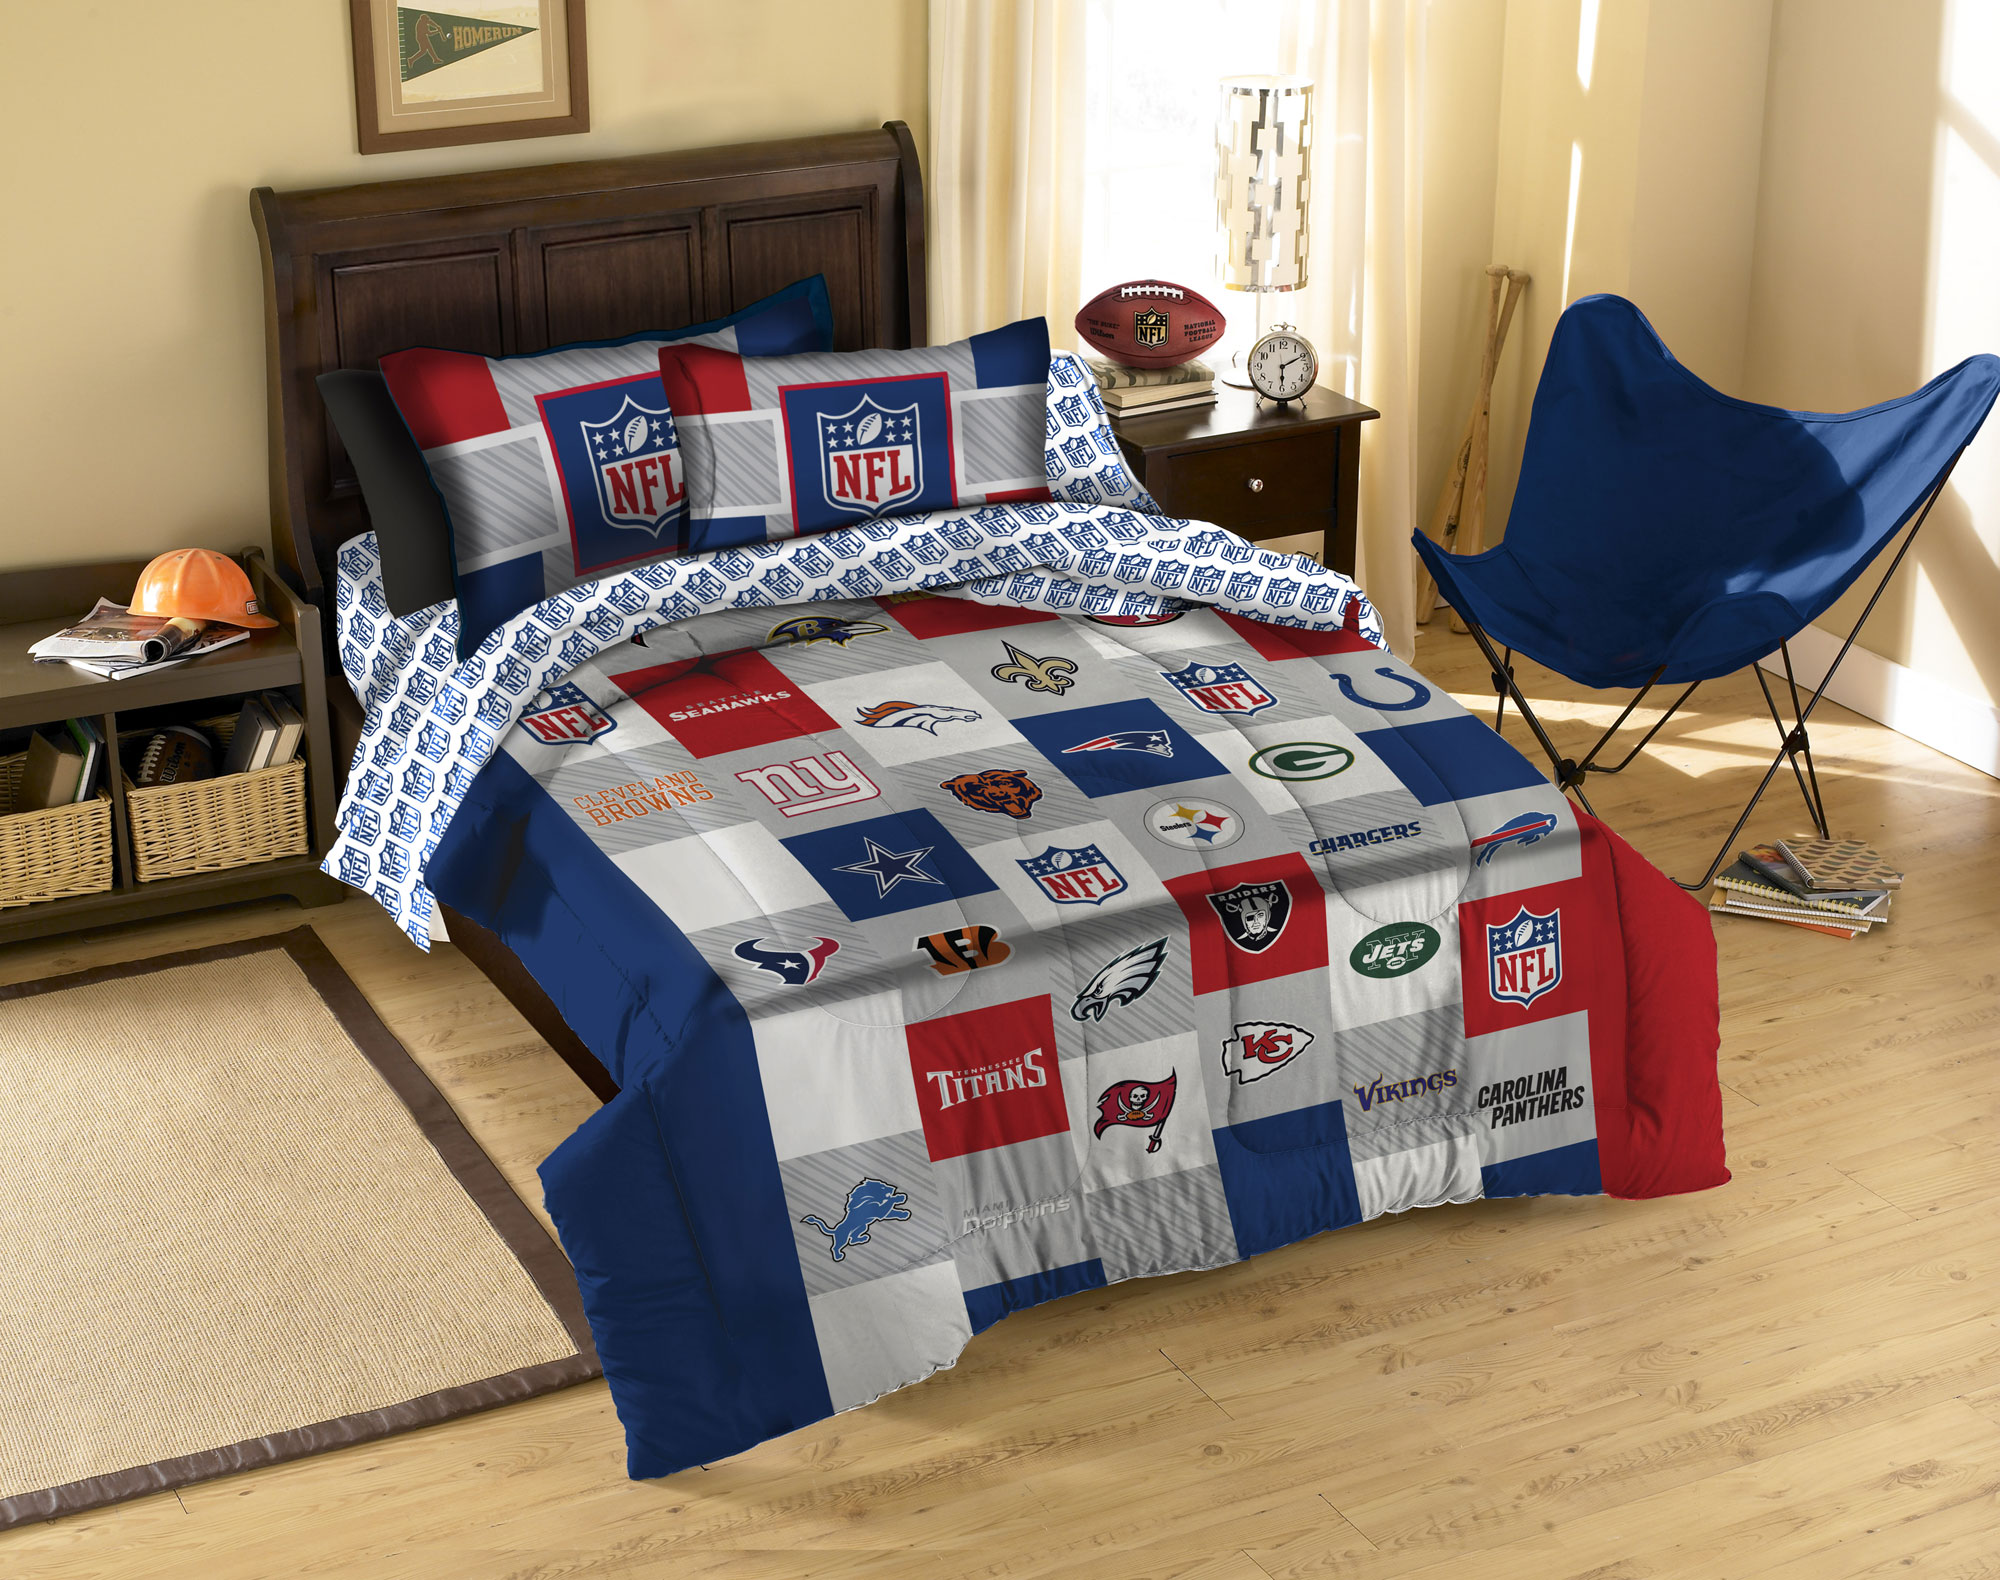 Nfl bedding for boys - Nfl Bedding For Boys 2